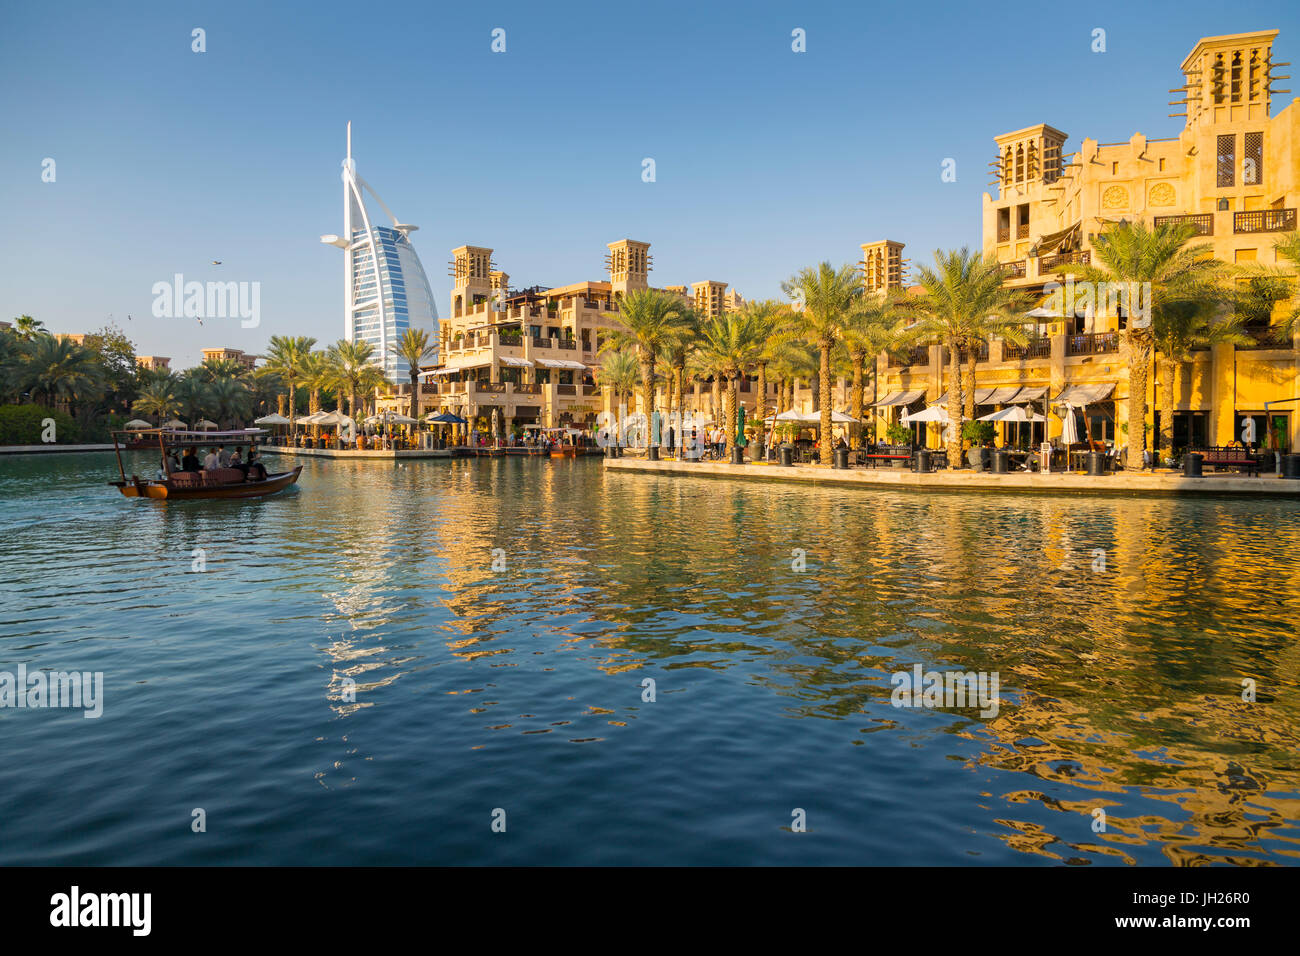 View of Burj Al Arab from Madinat Jumeirah, Dubai, United Arab Emirates, Middle East - Stock Image